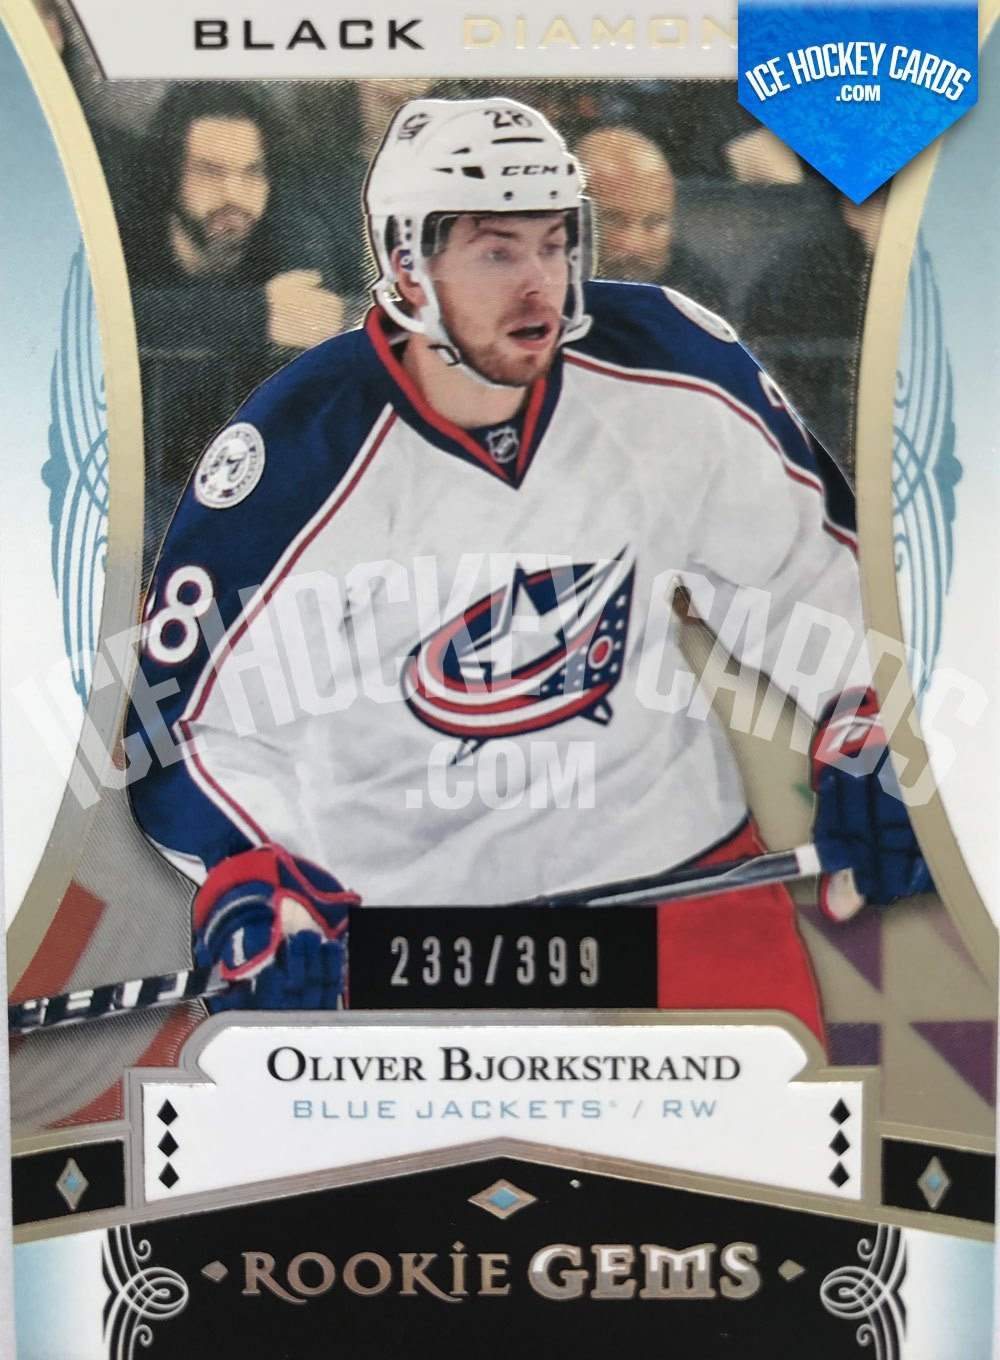 Upper Deck - Black Diamond 16-17 - Oliver Bjorkstrand Rookie Gems